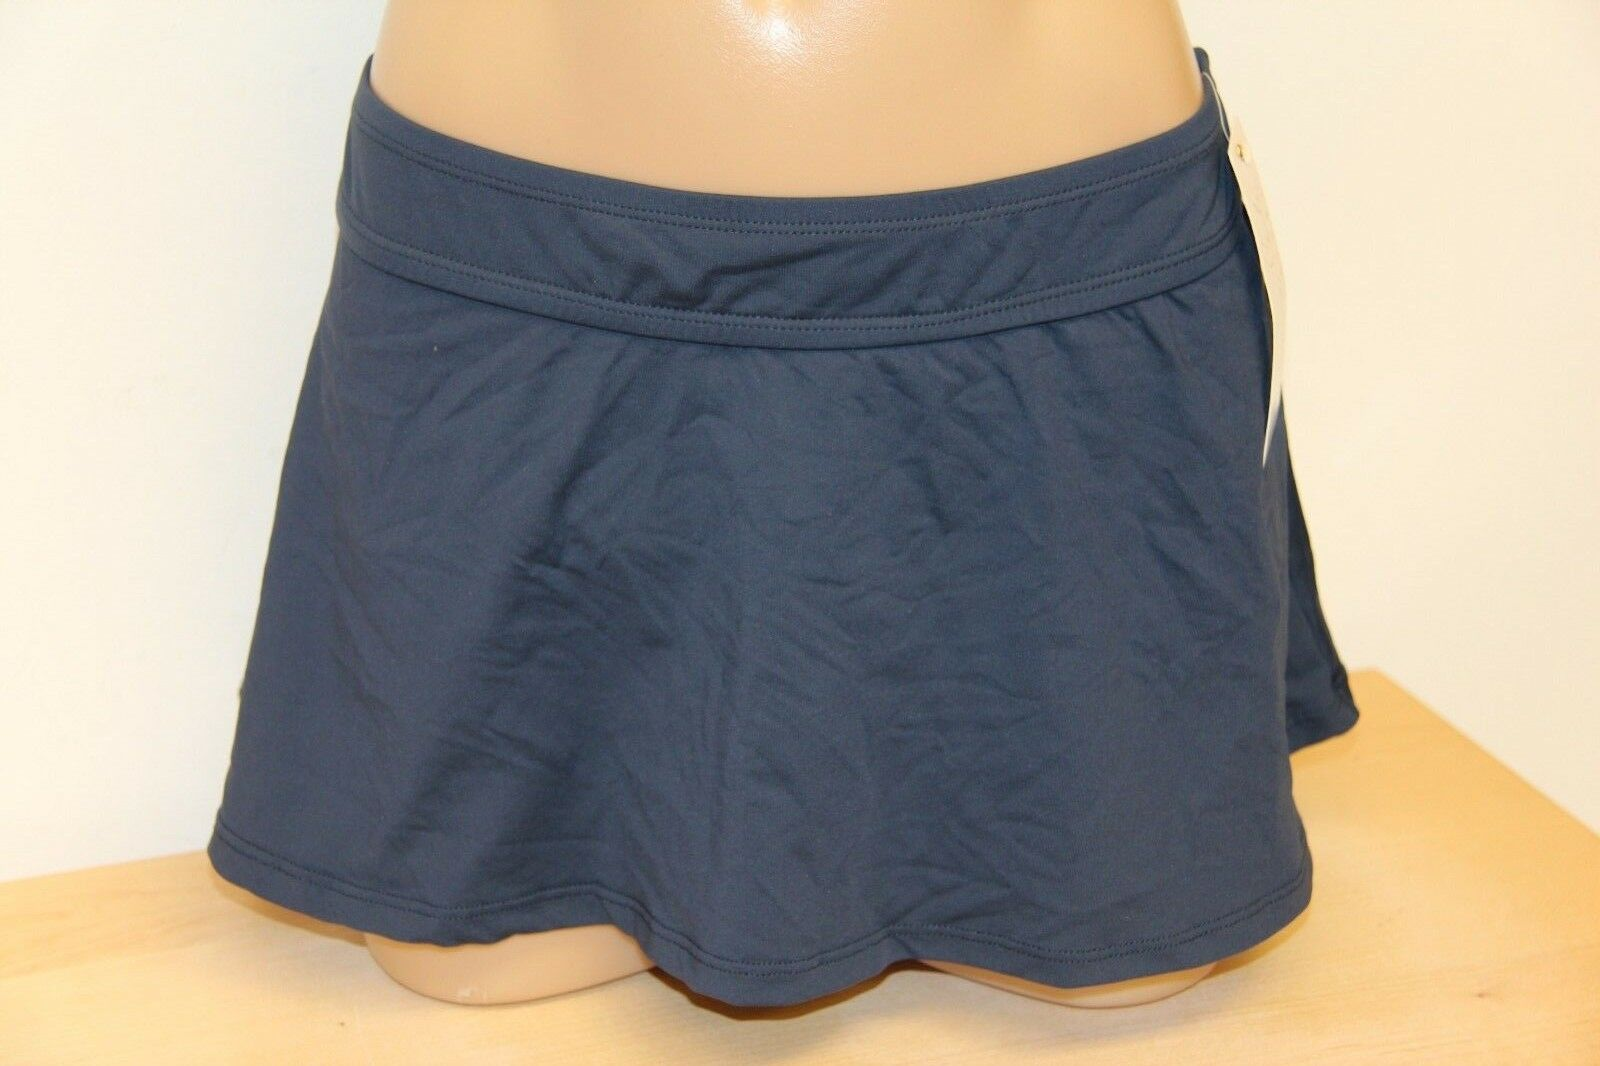 NWT Anne Cole Swimsuit Bikini Bikini Bikini Tankini 2 pc set Sz S Skirt Navy Green 137284